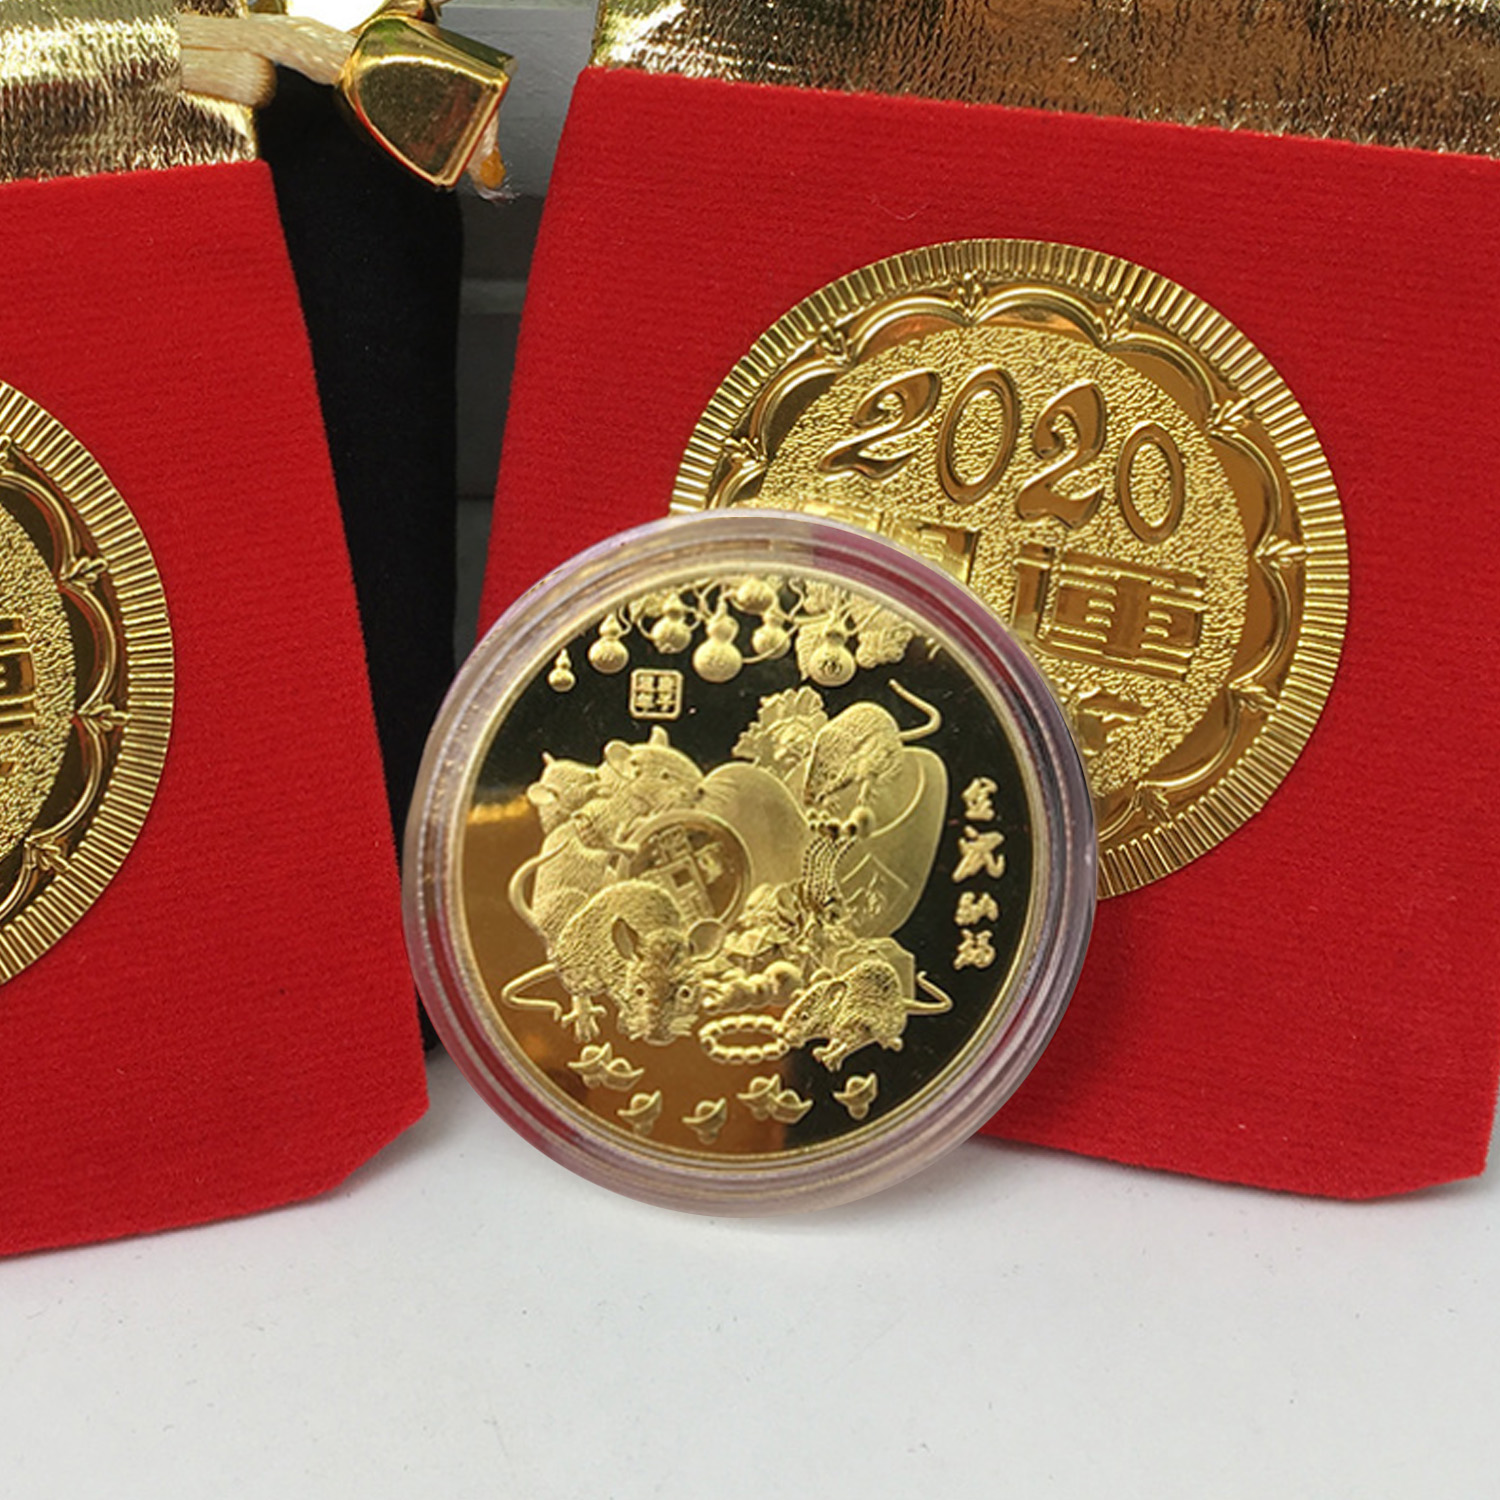 Besegad Commemorative Coin 2020 Year Of The Rat Challenge Collectible Coins Chinese Zodiac Souvenir For Spring Festival Gifts